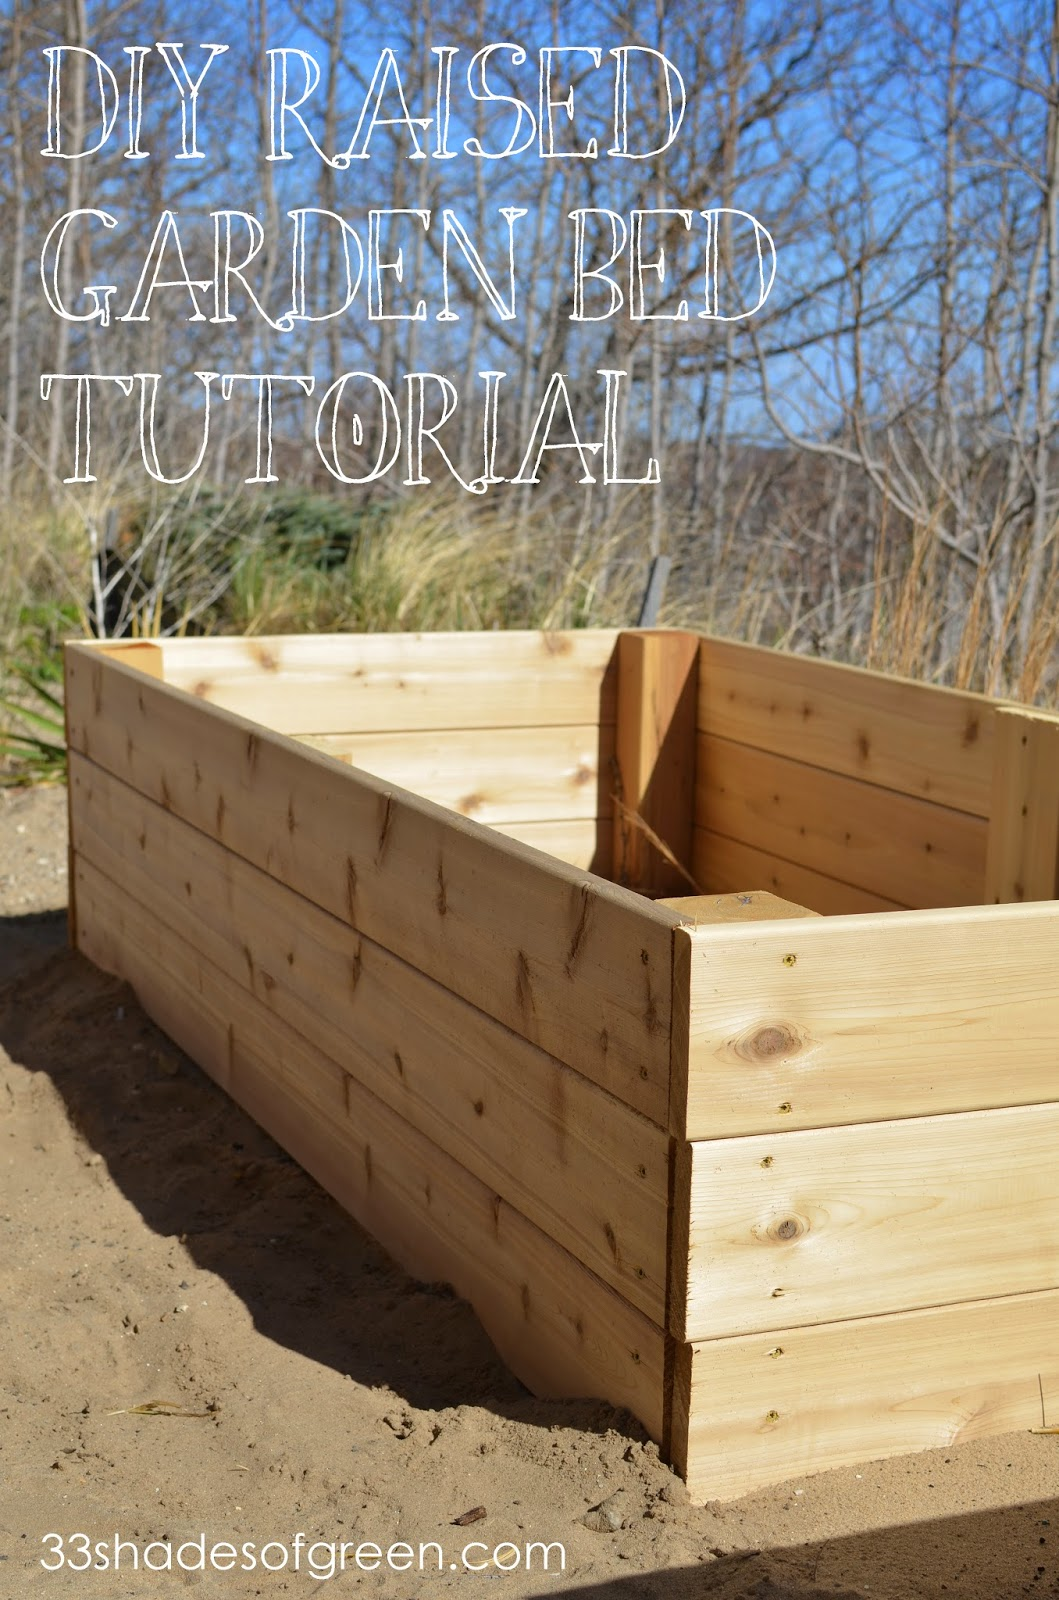 bed build a garden simple diy raised cheap gardening is wonderful